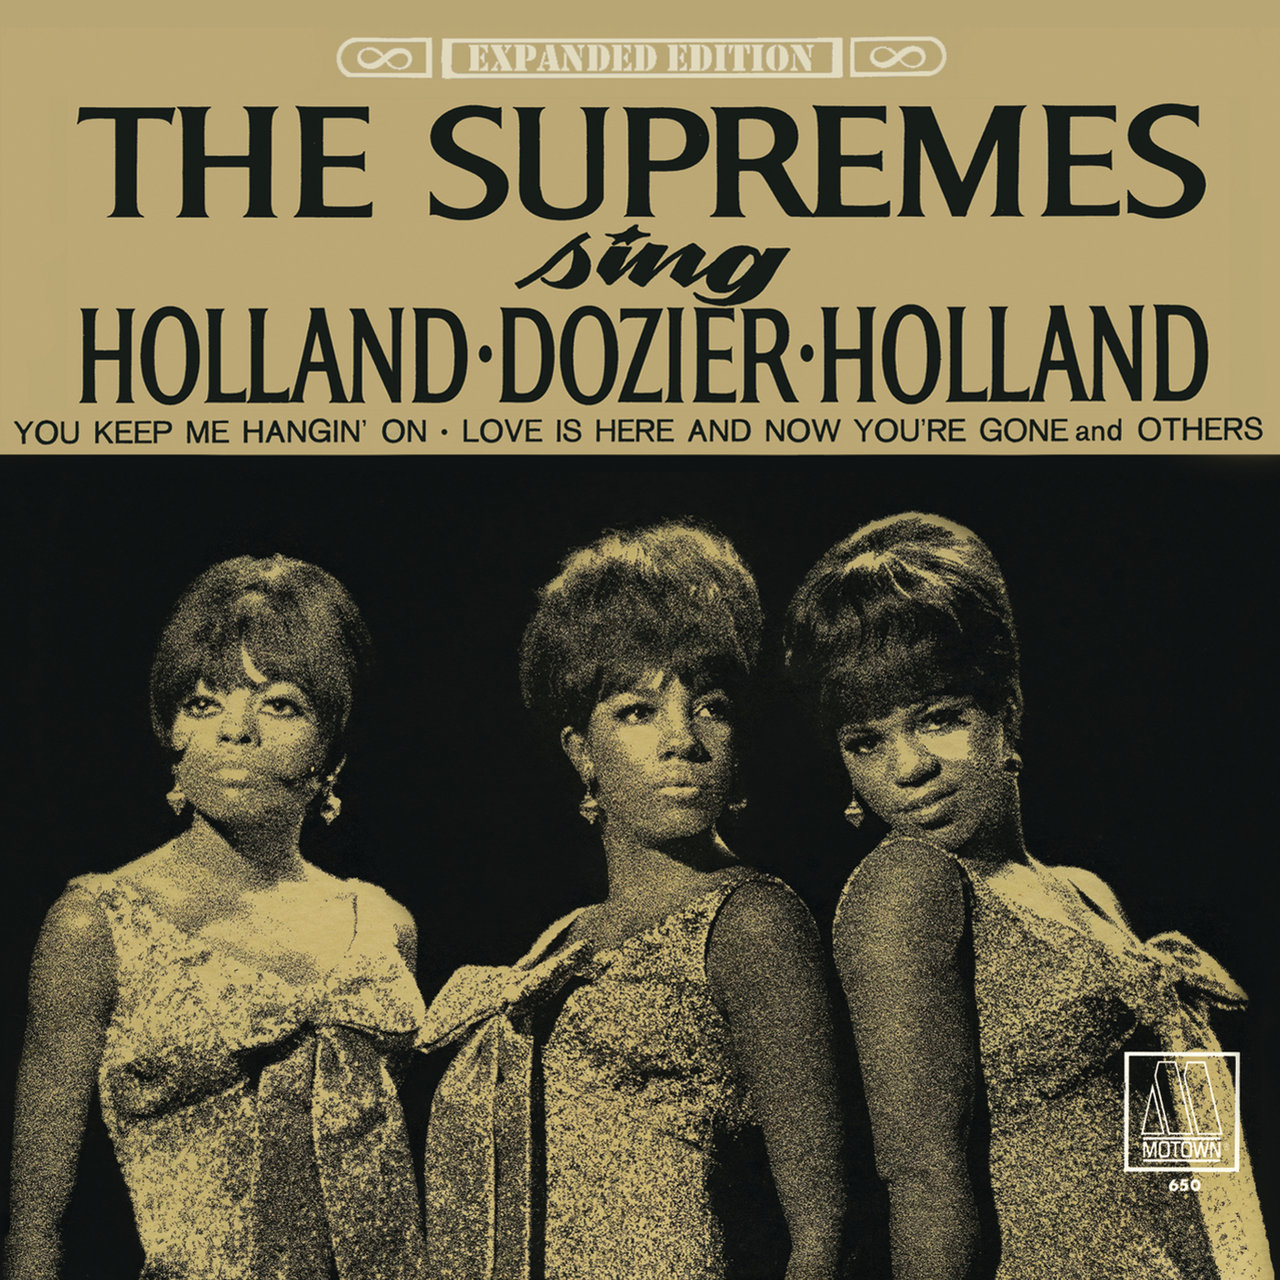 The Supremes Sing Holland - Dozier - Holland (Expanded Edition)